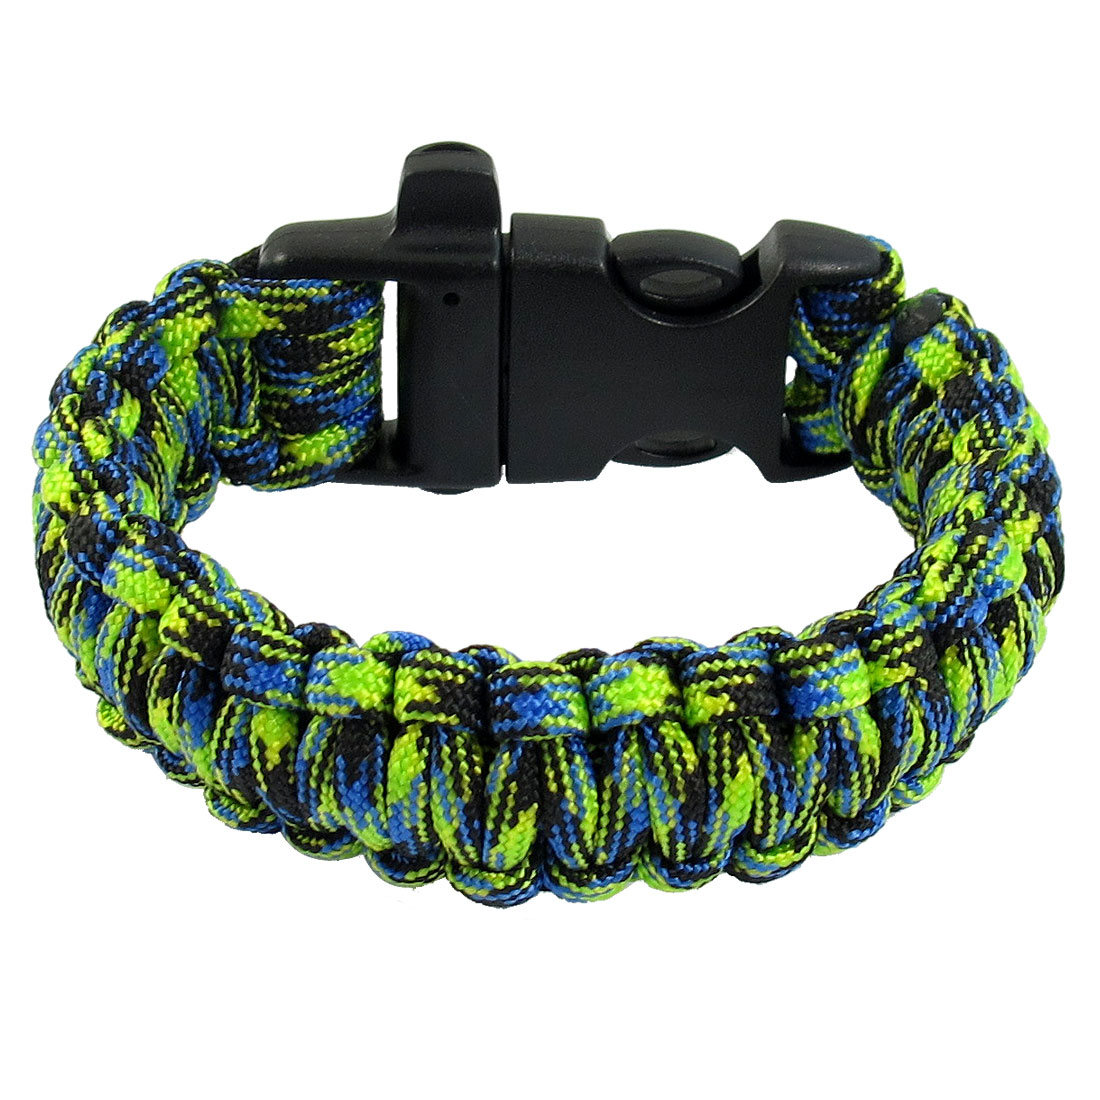 Whistle Desert Camo Plastic Buckle Colorful Survival Bracelet